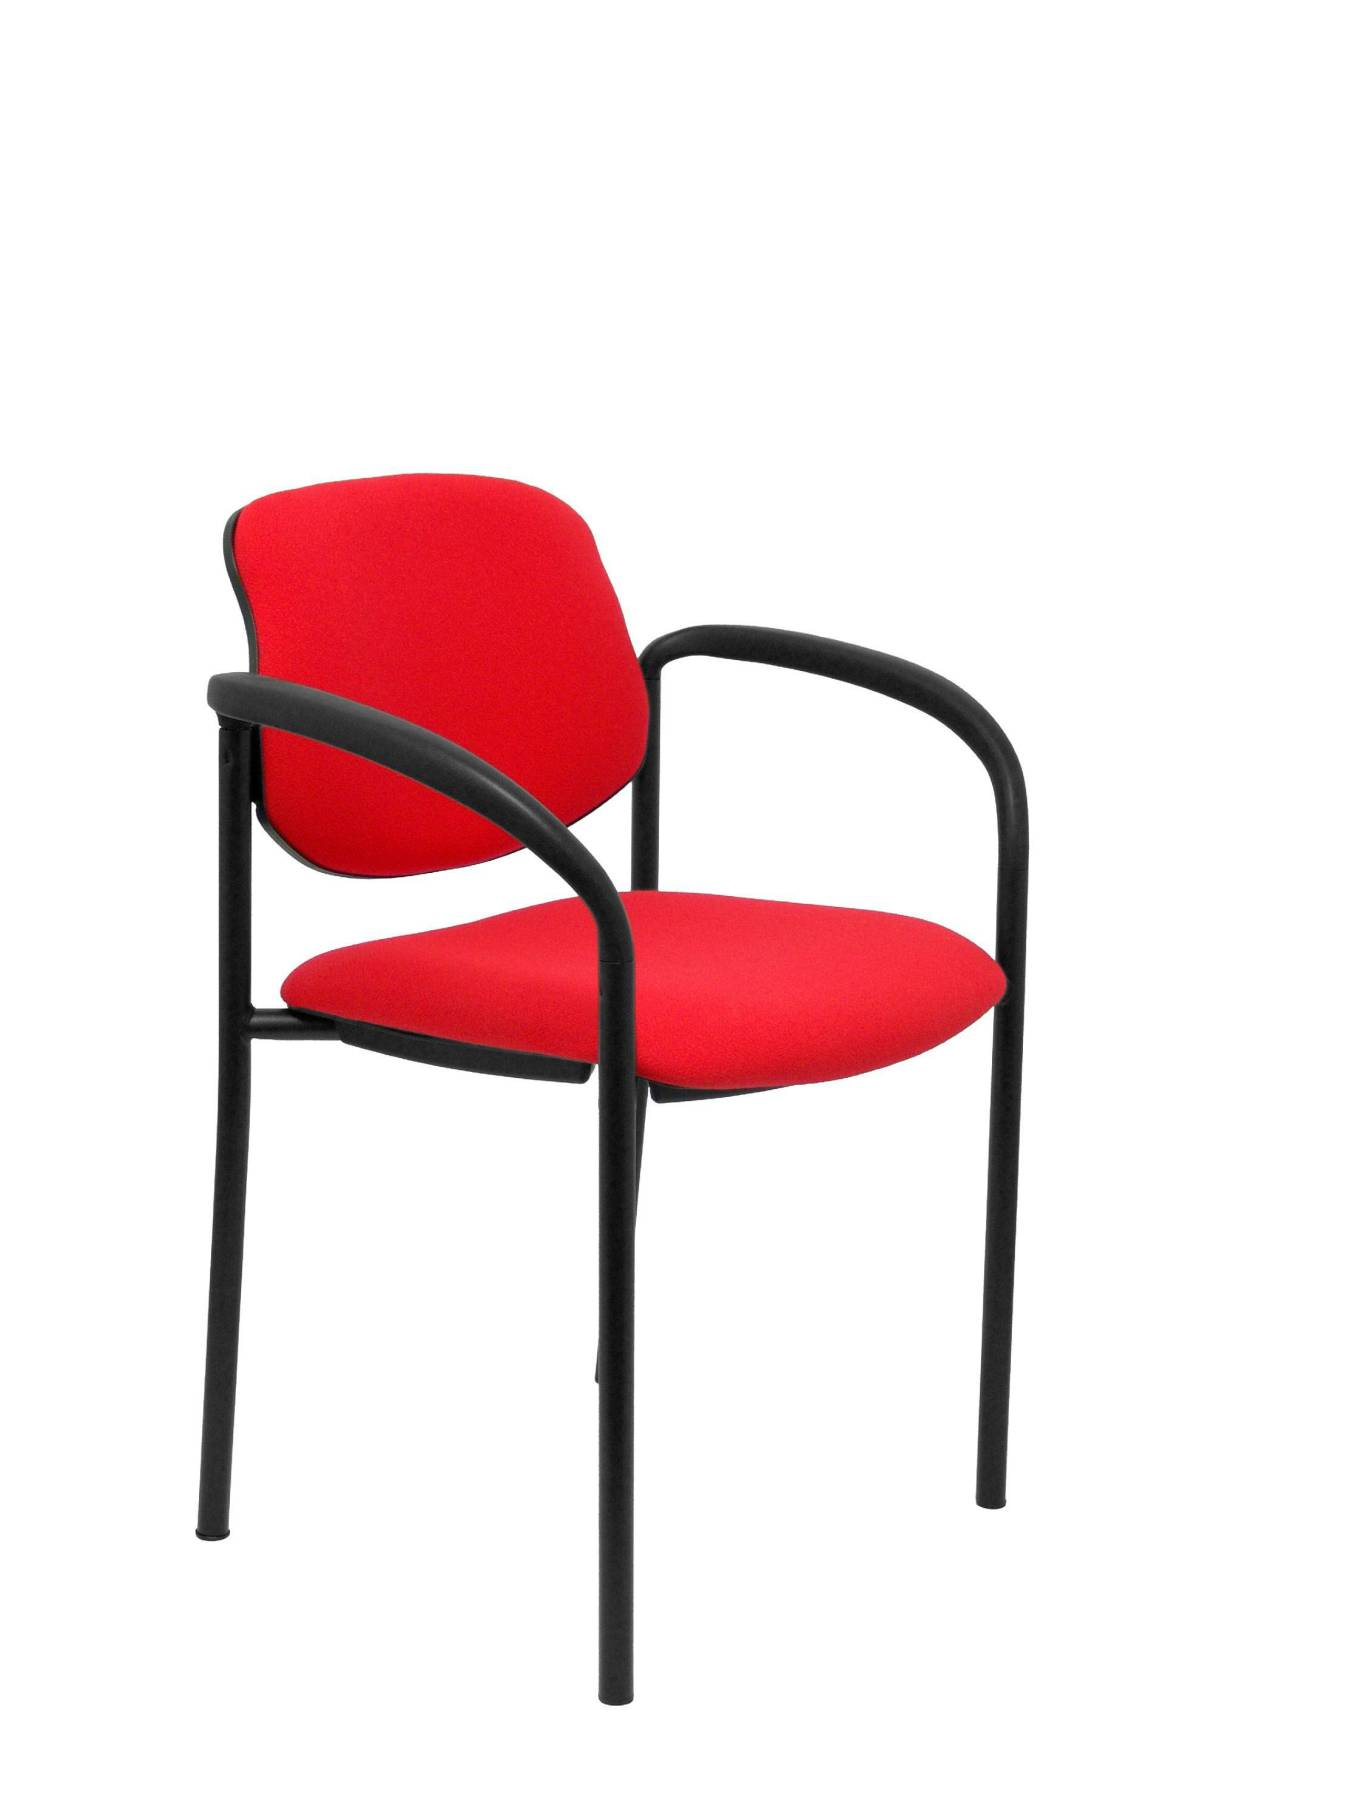 Visitor Chair 4's Topsy, With Arms And Estructrua Negro-up Seat And Backstop Upholstered In BALI Tissue Red Color PIQU